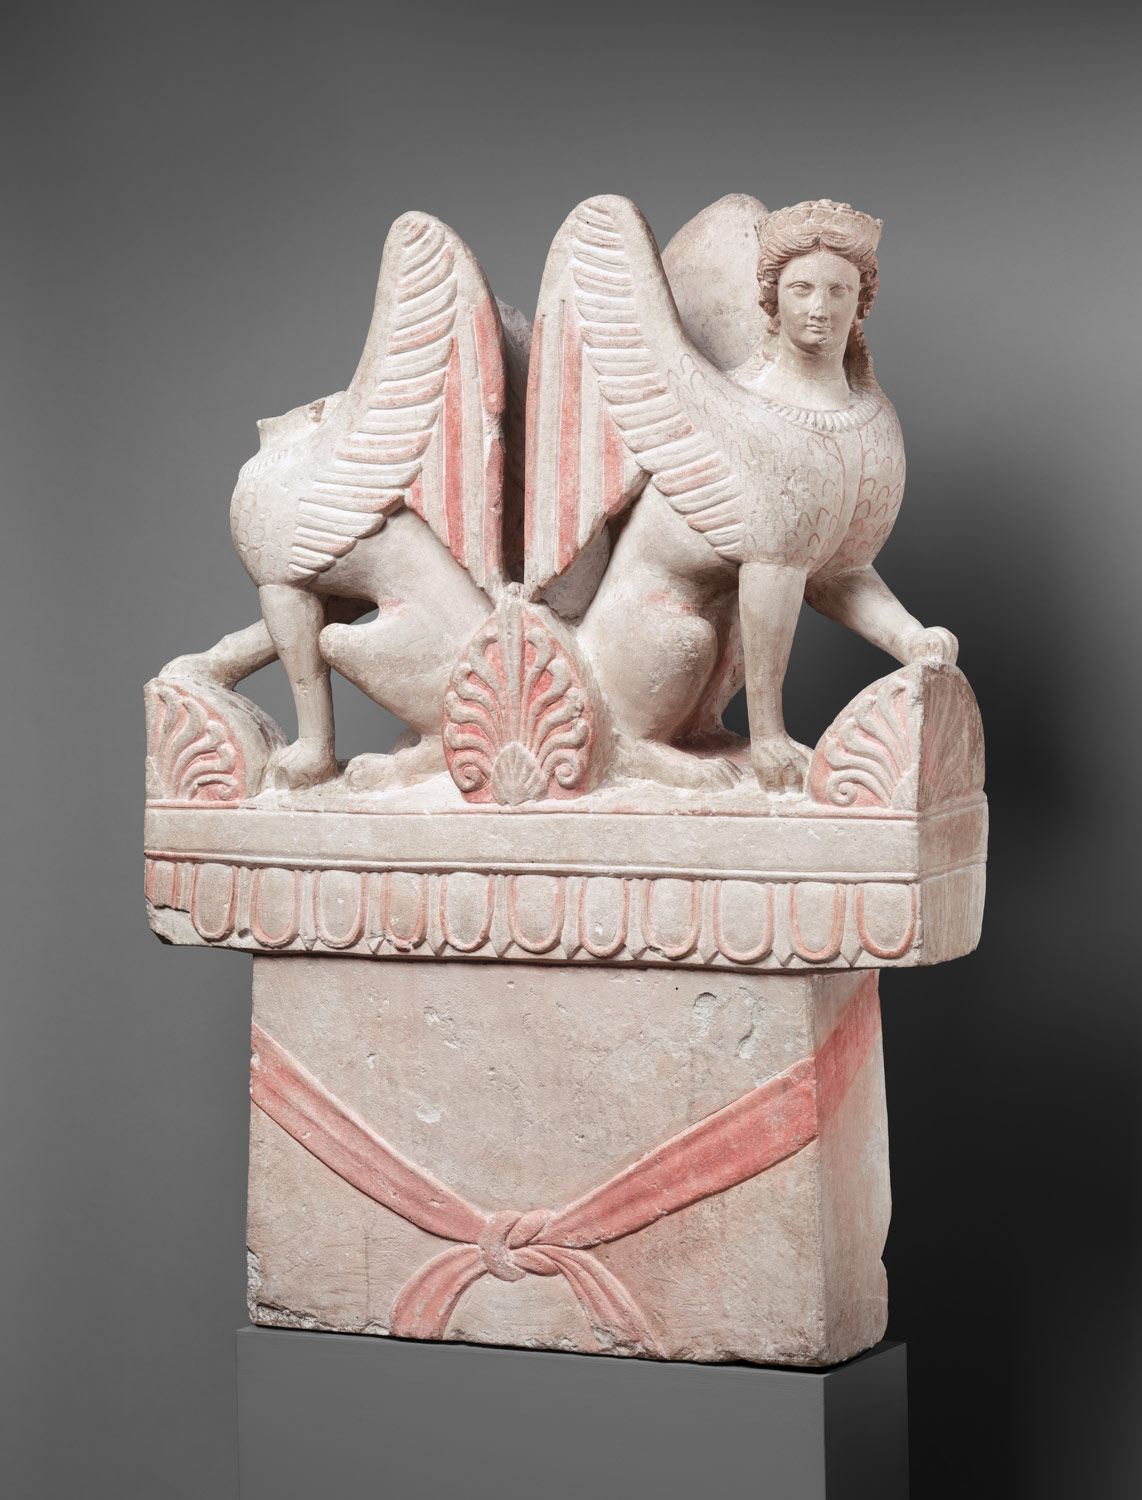 Limestone funerary stele (shaft) surmounted by two sphinxes